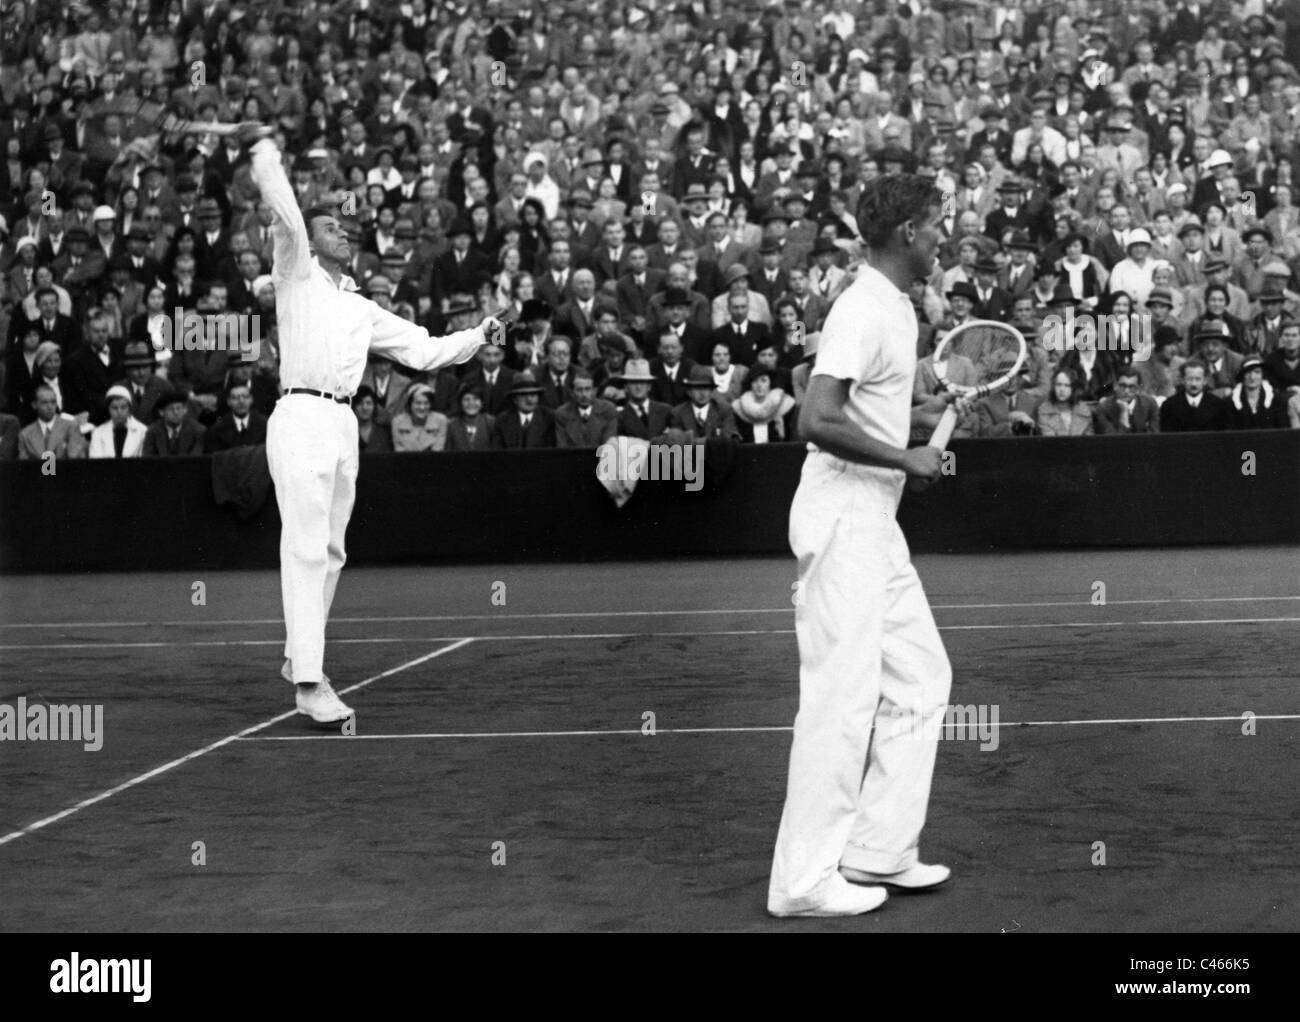 Sport Tennis Personalities Black and White Stock s &